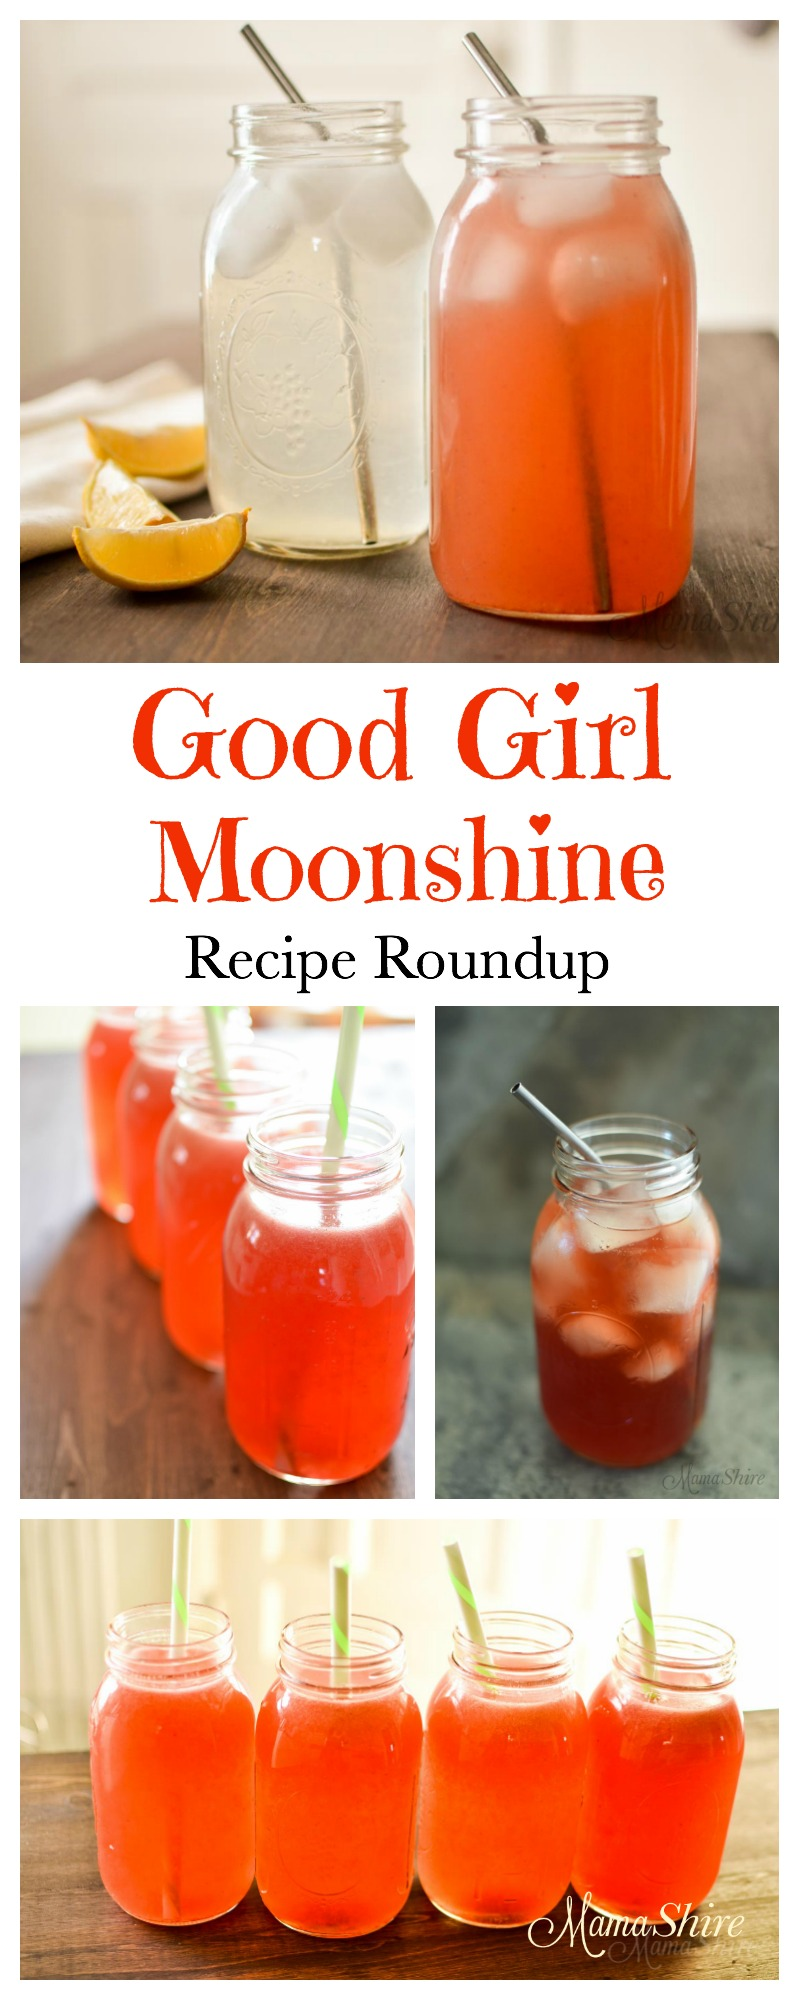 Good Girl Moonshine Recipe Roundup